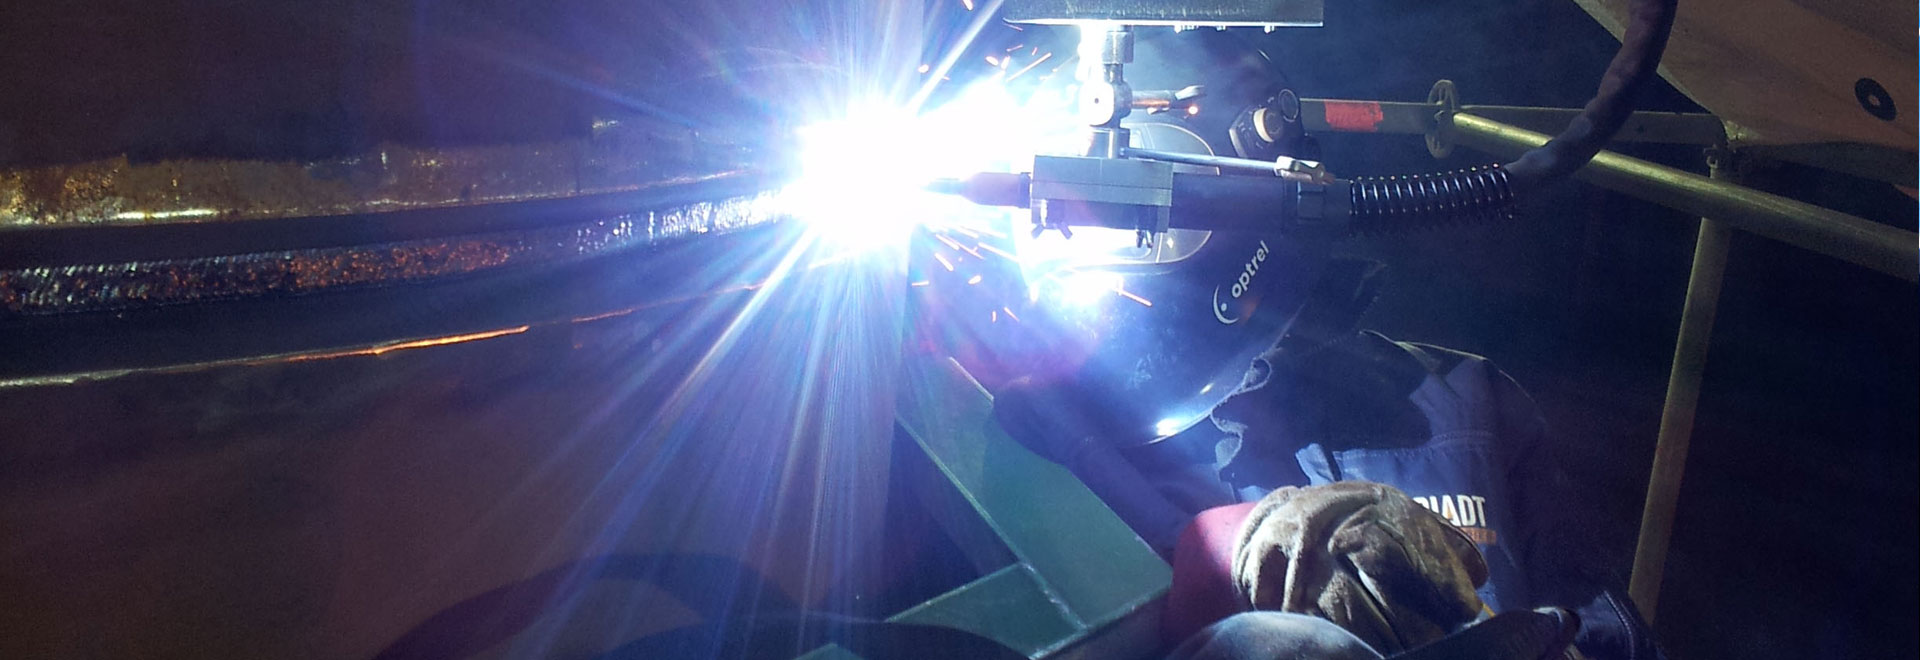 Firefly - for welding, cutting and bevelling